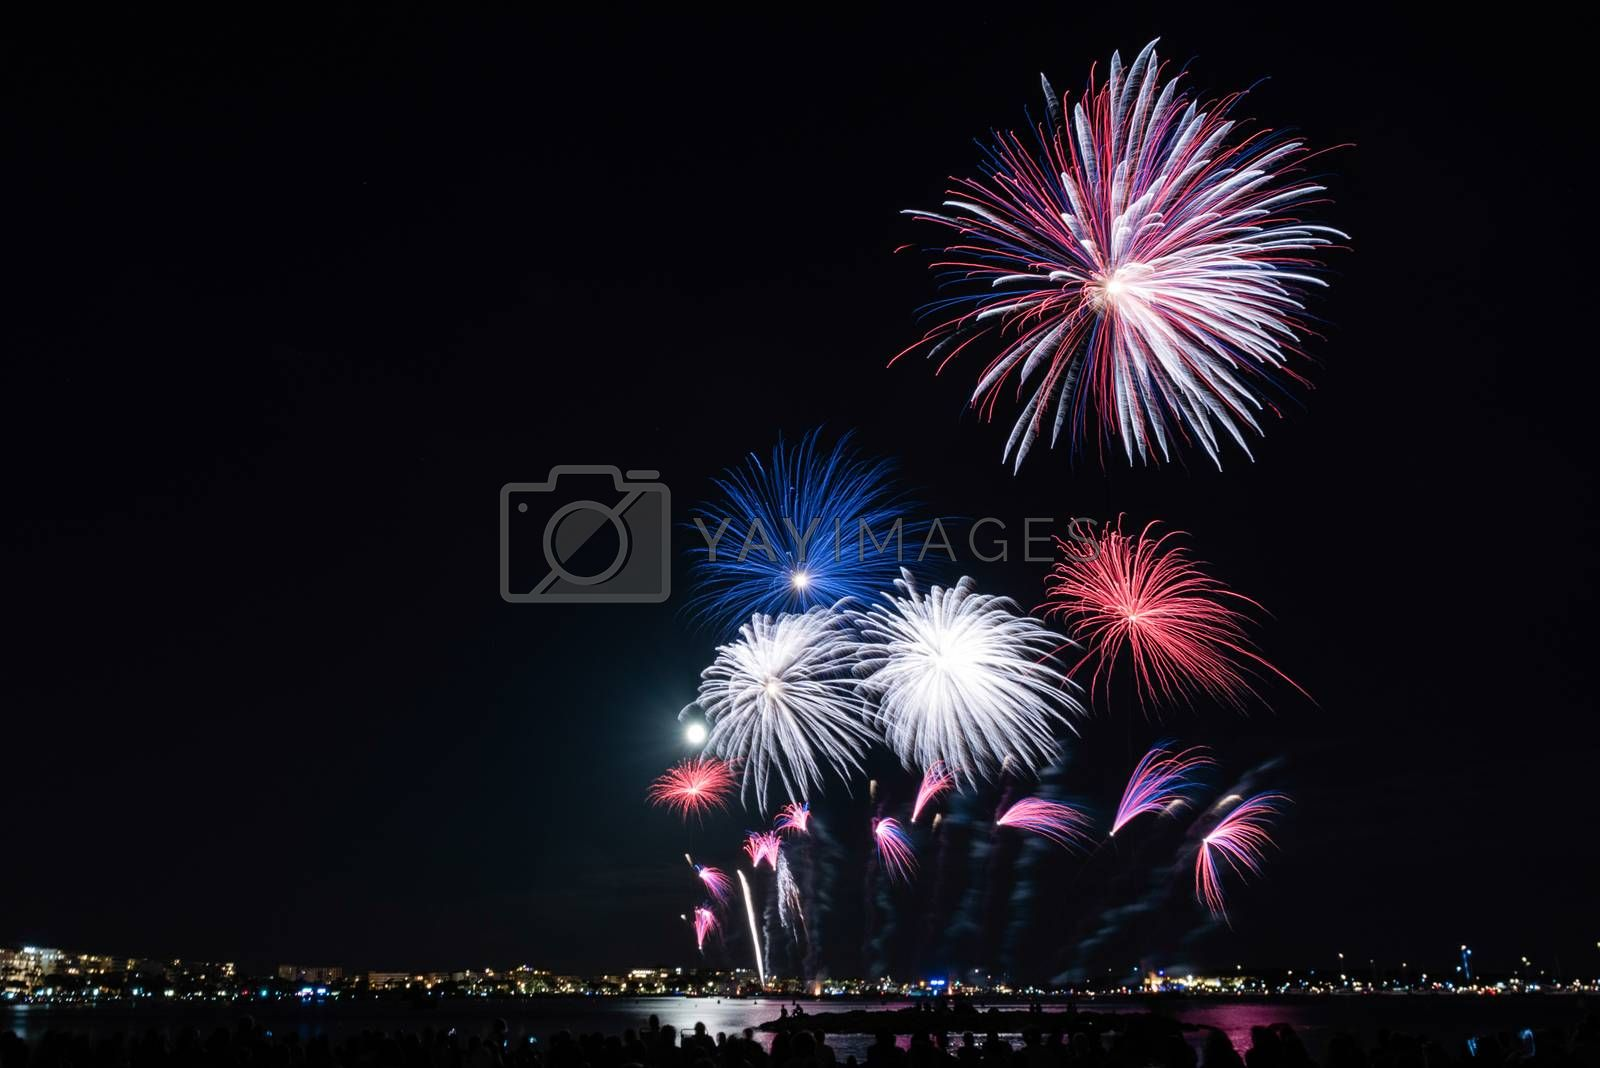 Scenic fireworks glowing in the night for the 14th of July celebrations in the harbor of Cannes, Cote d'Azur, France